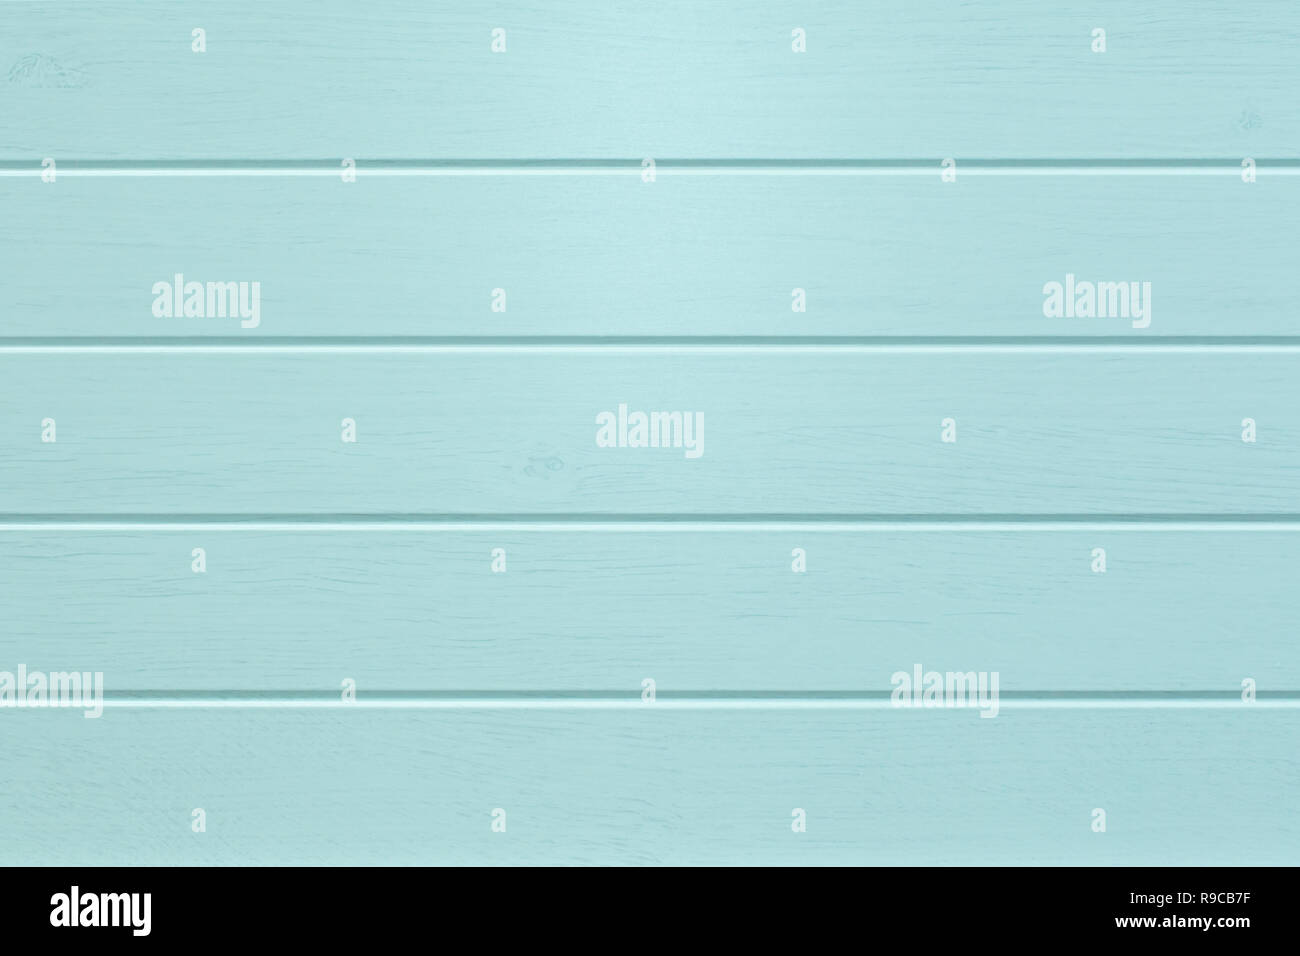 Empty Turquoise colored horizontal wooden planks texture background - Stock Image